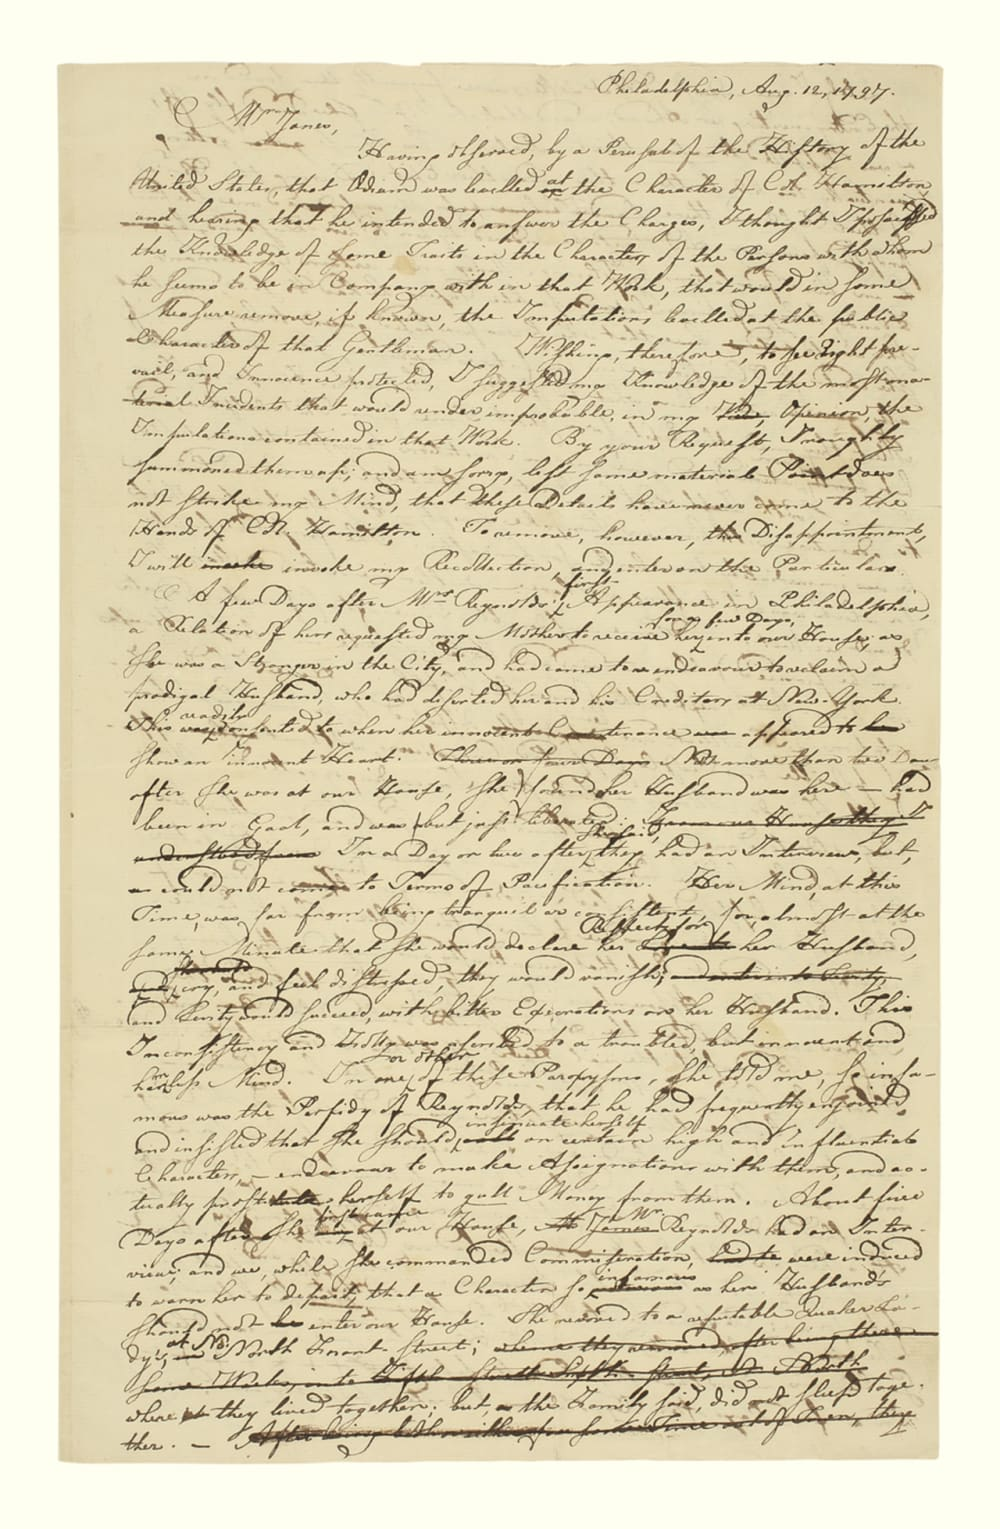 8. LETTER FROM RICHARD FOLWELL INTENDED FOR HAMILTON ABOUT MARIA REYNOLDS // LOT 1053